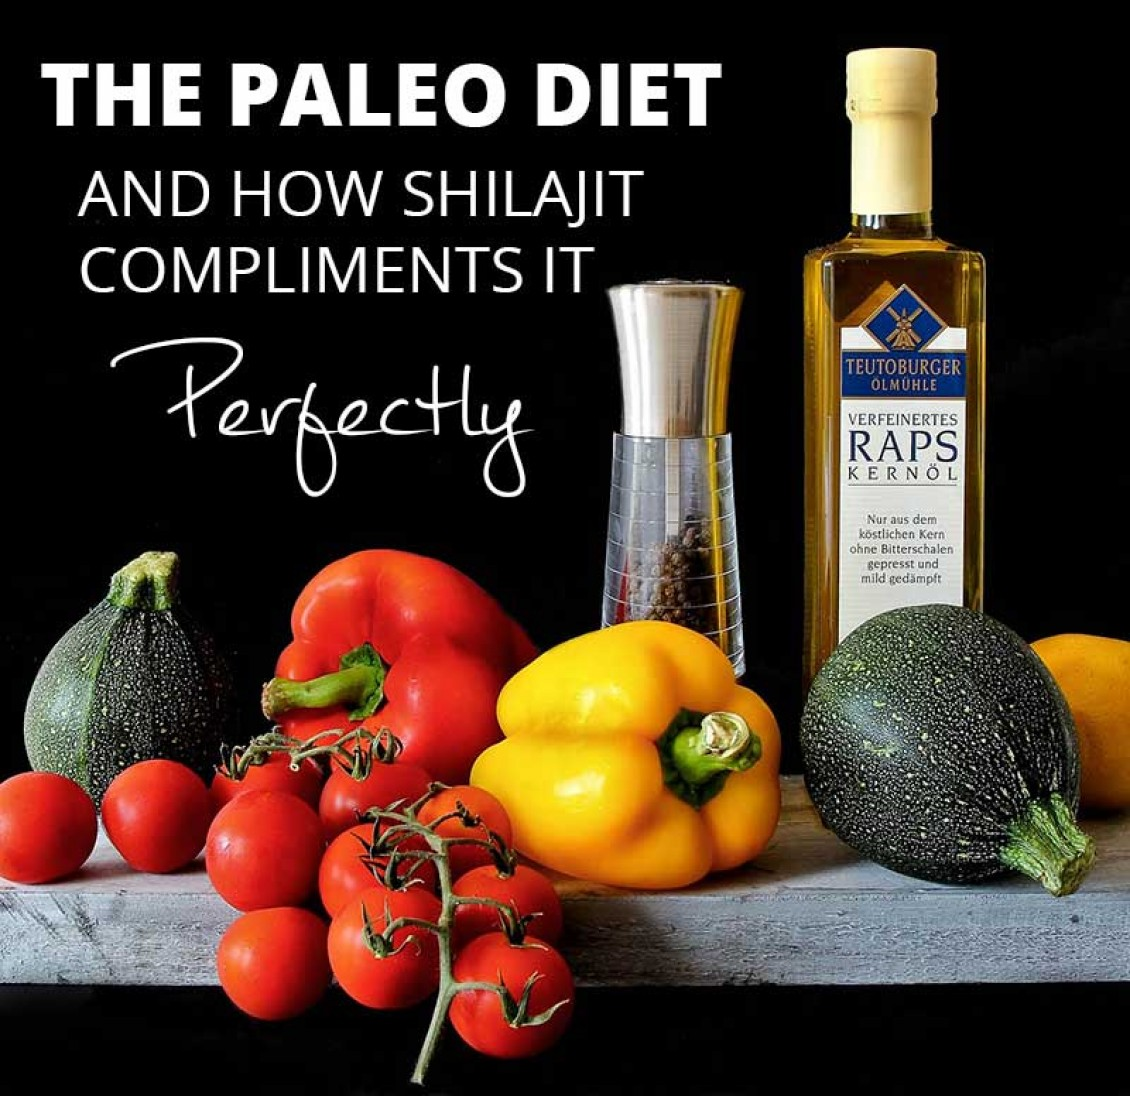 Why Shilajit compliments the Paleo Diet